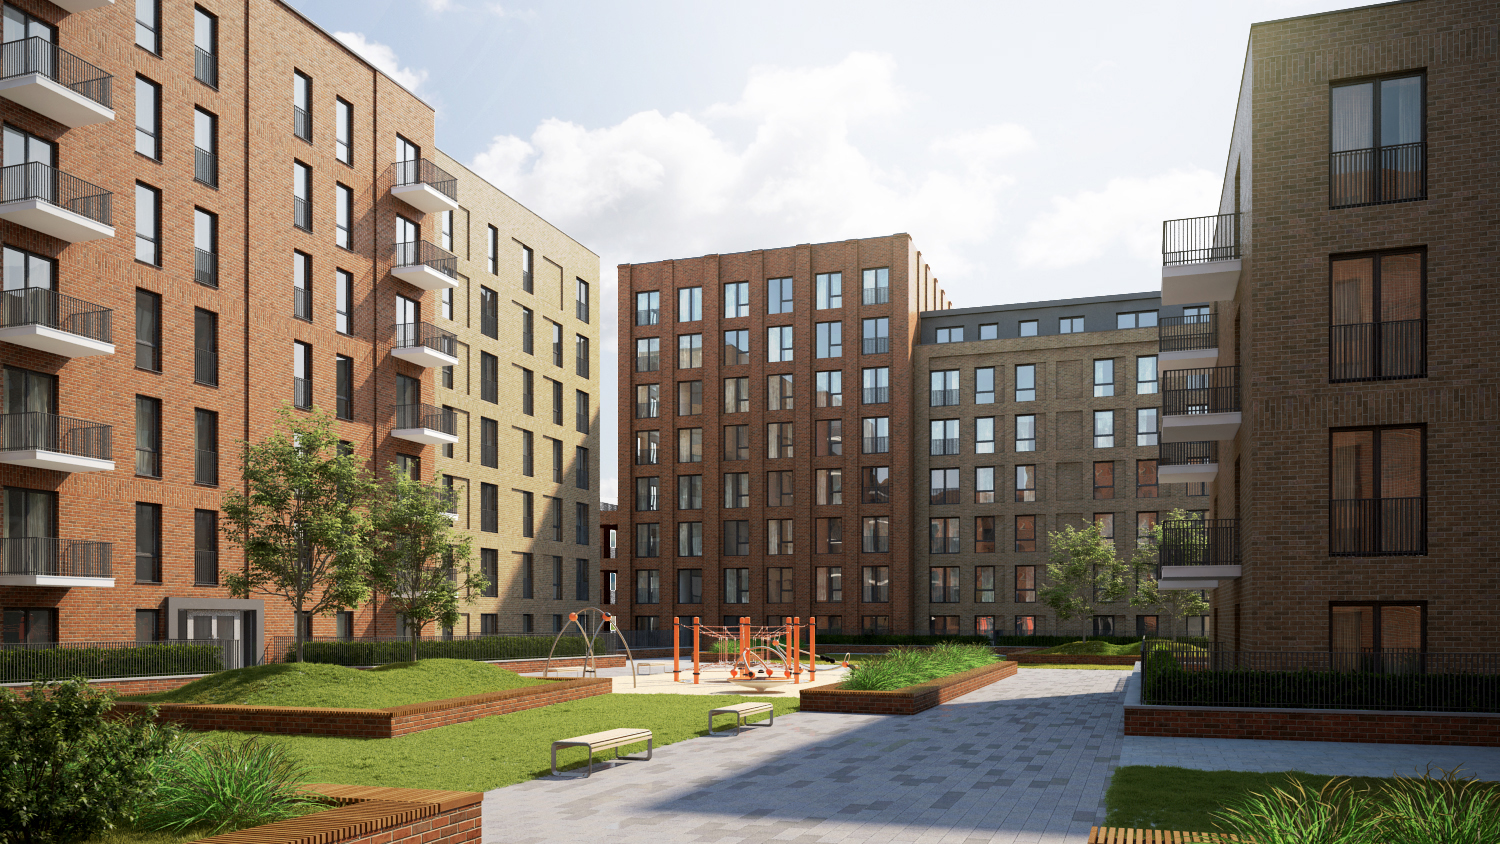 Dock 5: The new £53m dockside apartments bridging city life and green space in Salford, The Manc